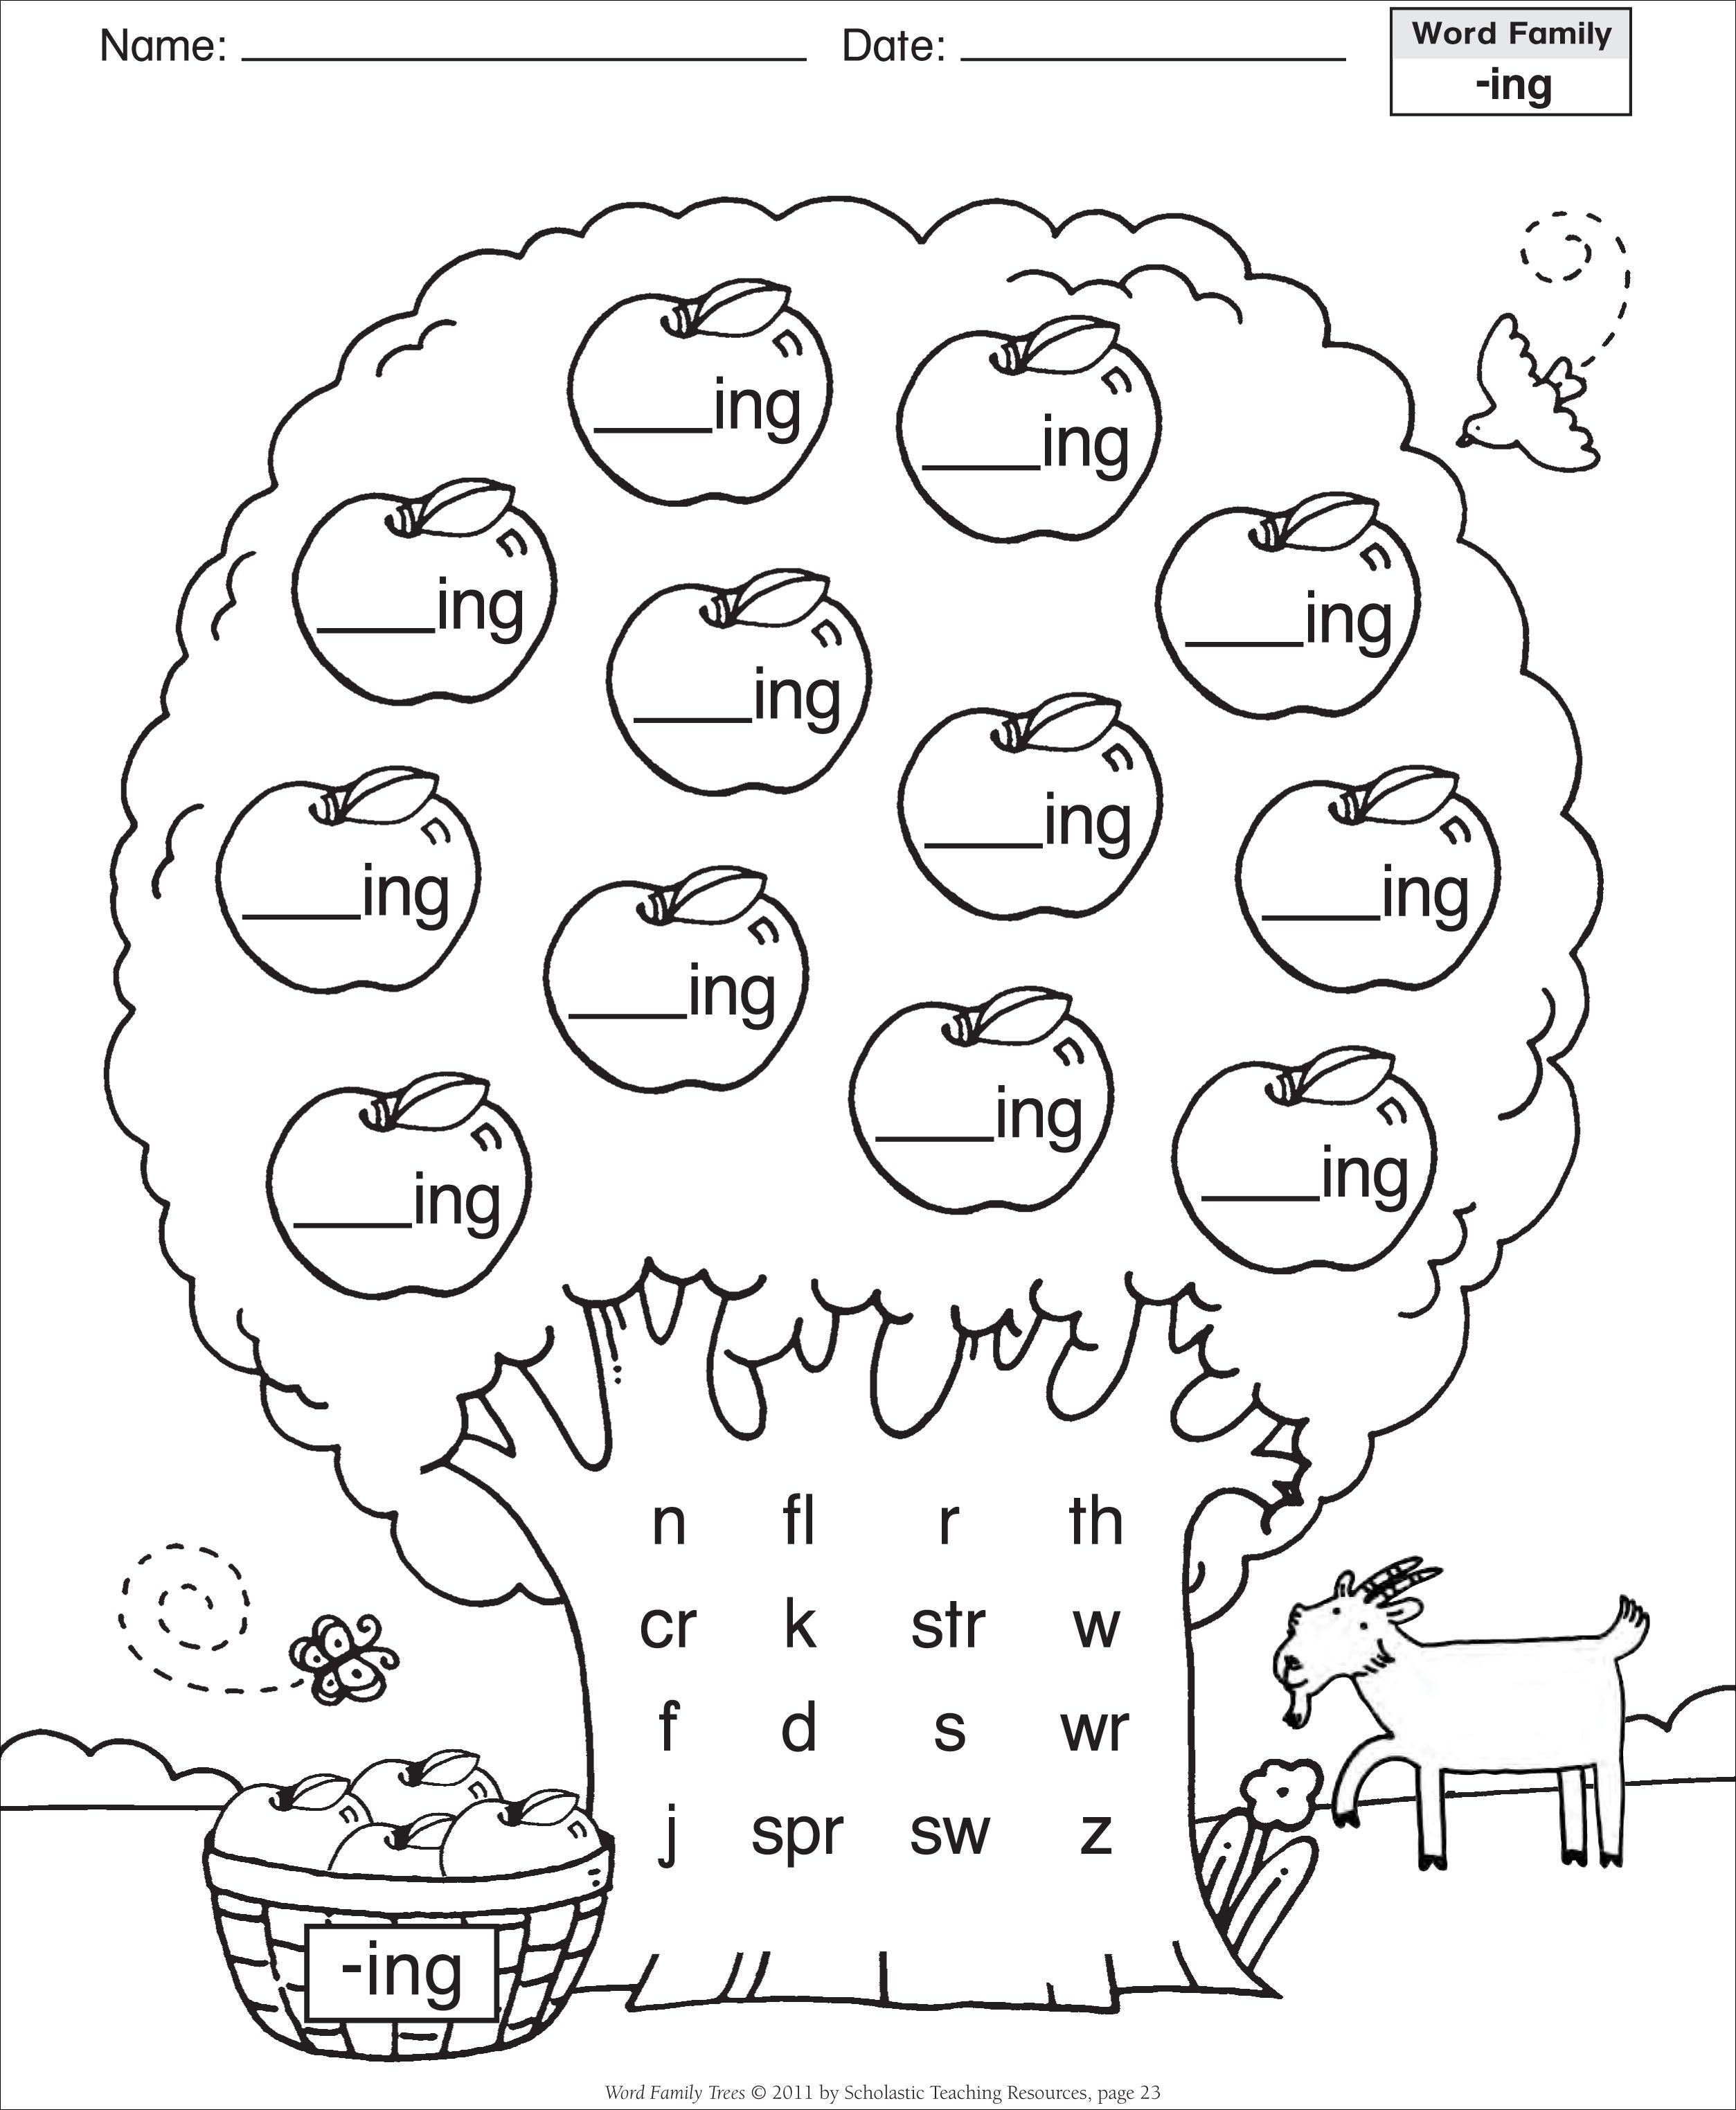 Ink Word Family Worksheet